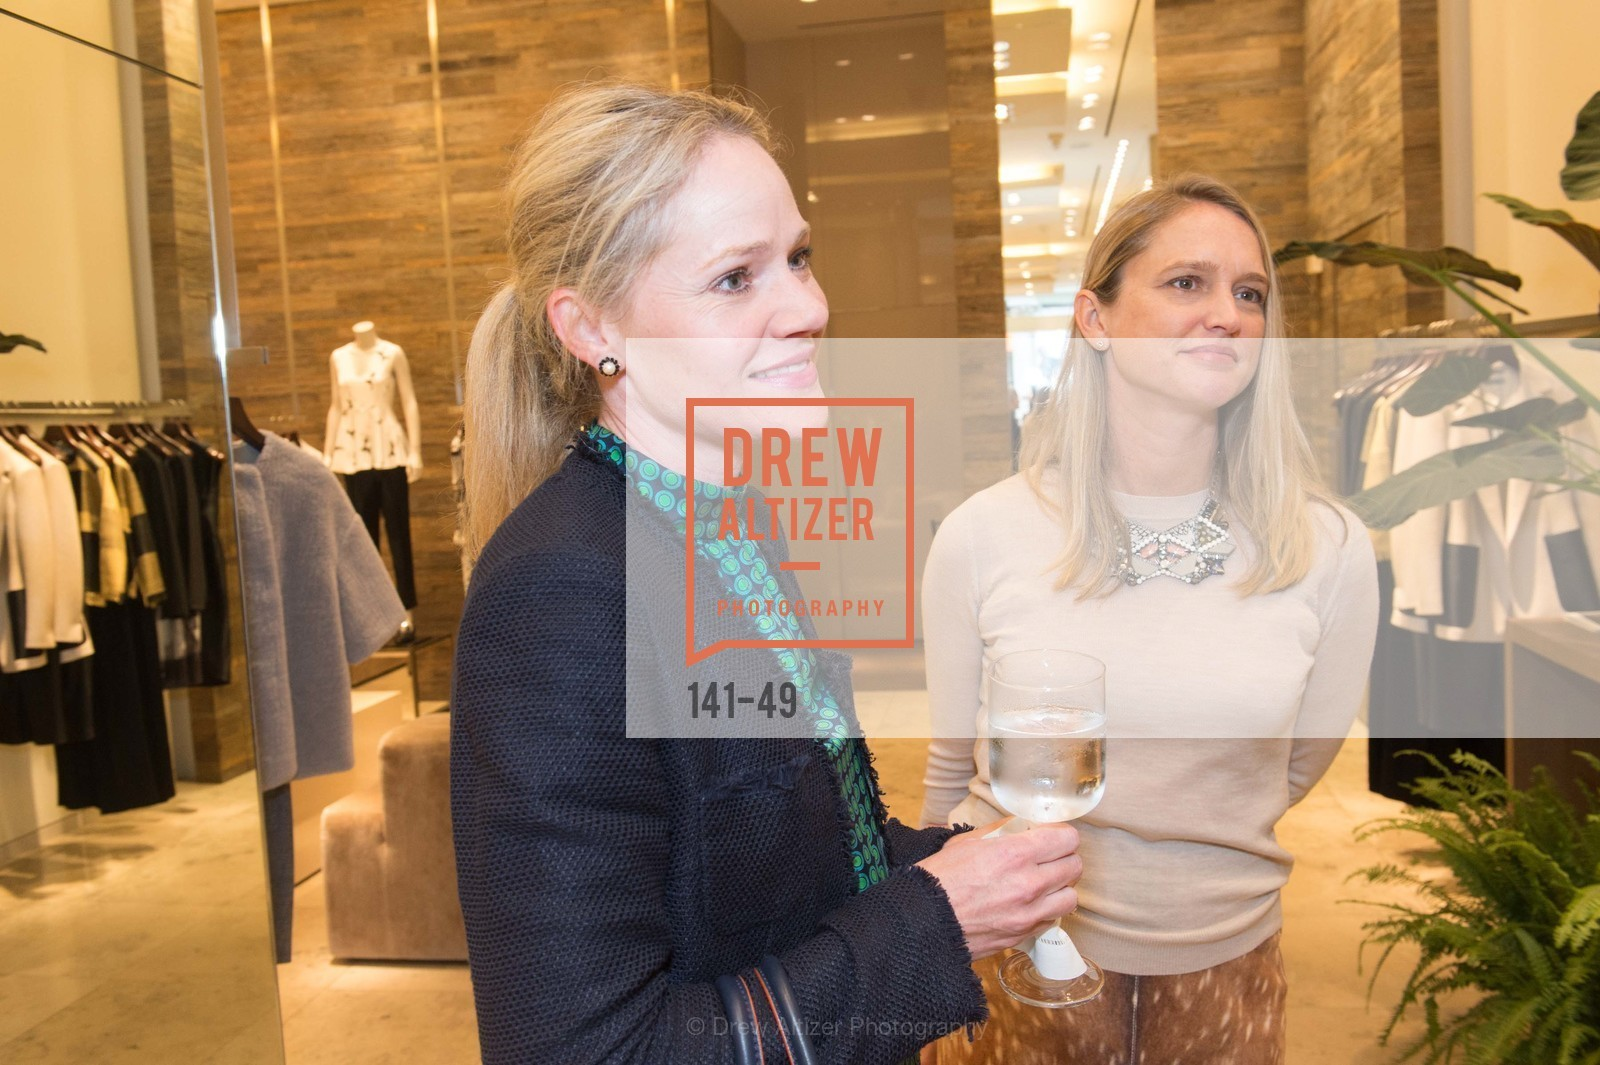 Camille Marks, Ellie Pollak, Luncheon Hosted by Max Mara, Max Mara. 175 Post St, San Francisco, CA 94108, April 21st, 2015,Drew Altizer, Drew Altizer Photography, full-service agency, private events, San Francisco photographer, photographer california